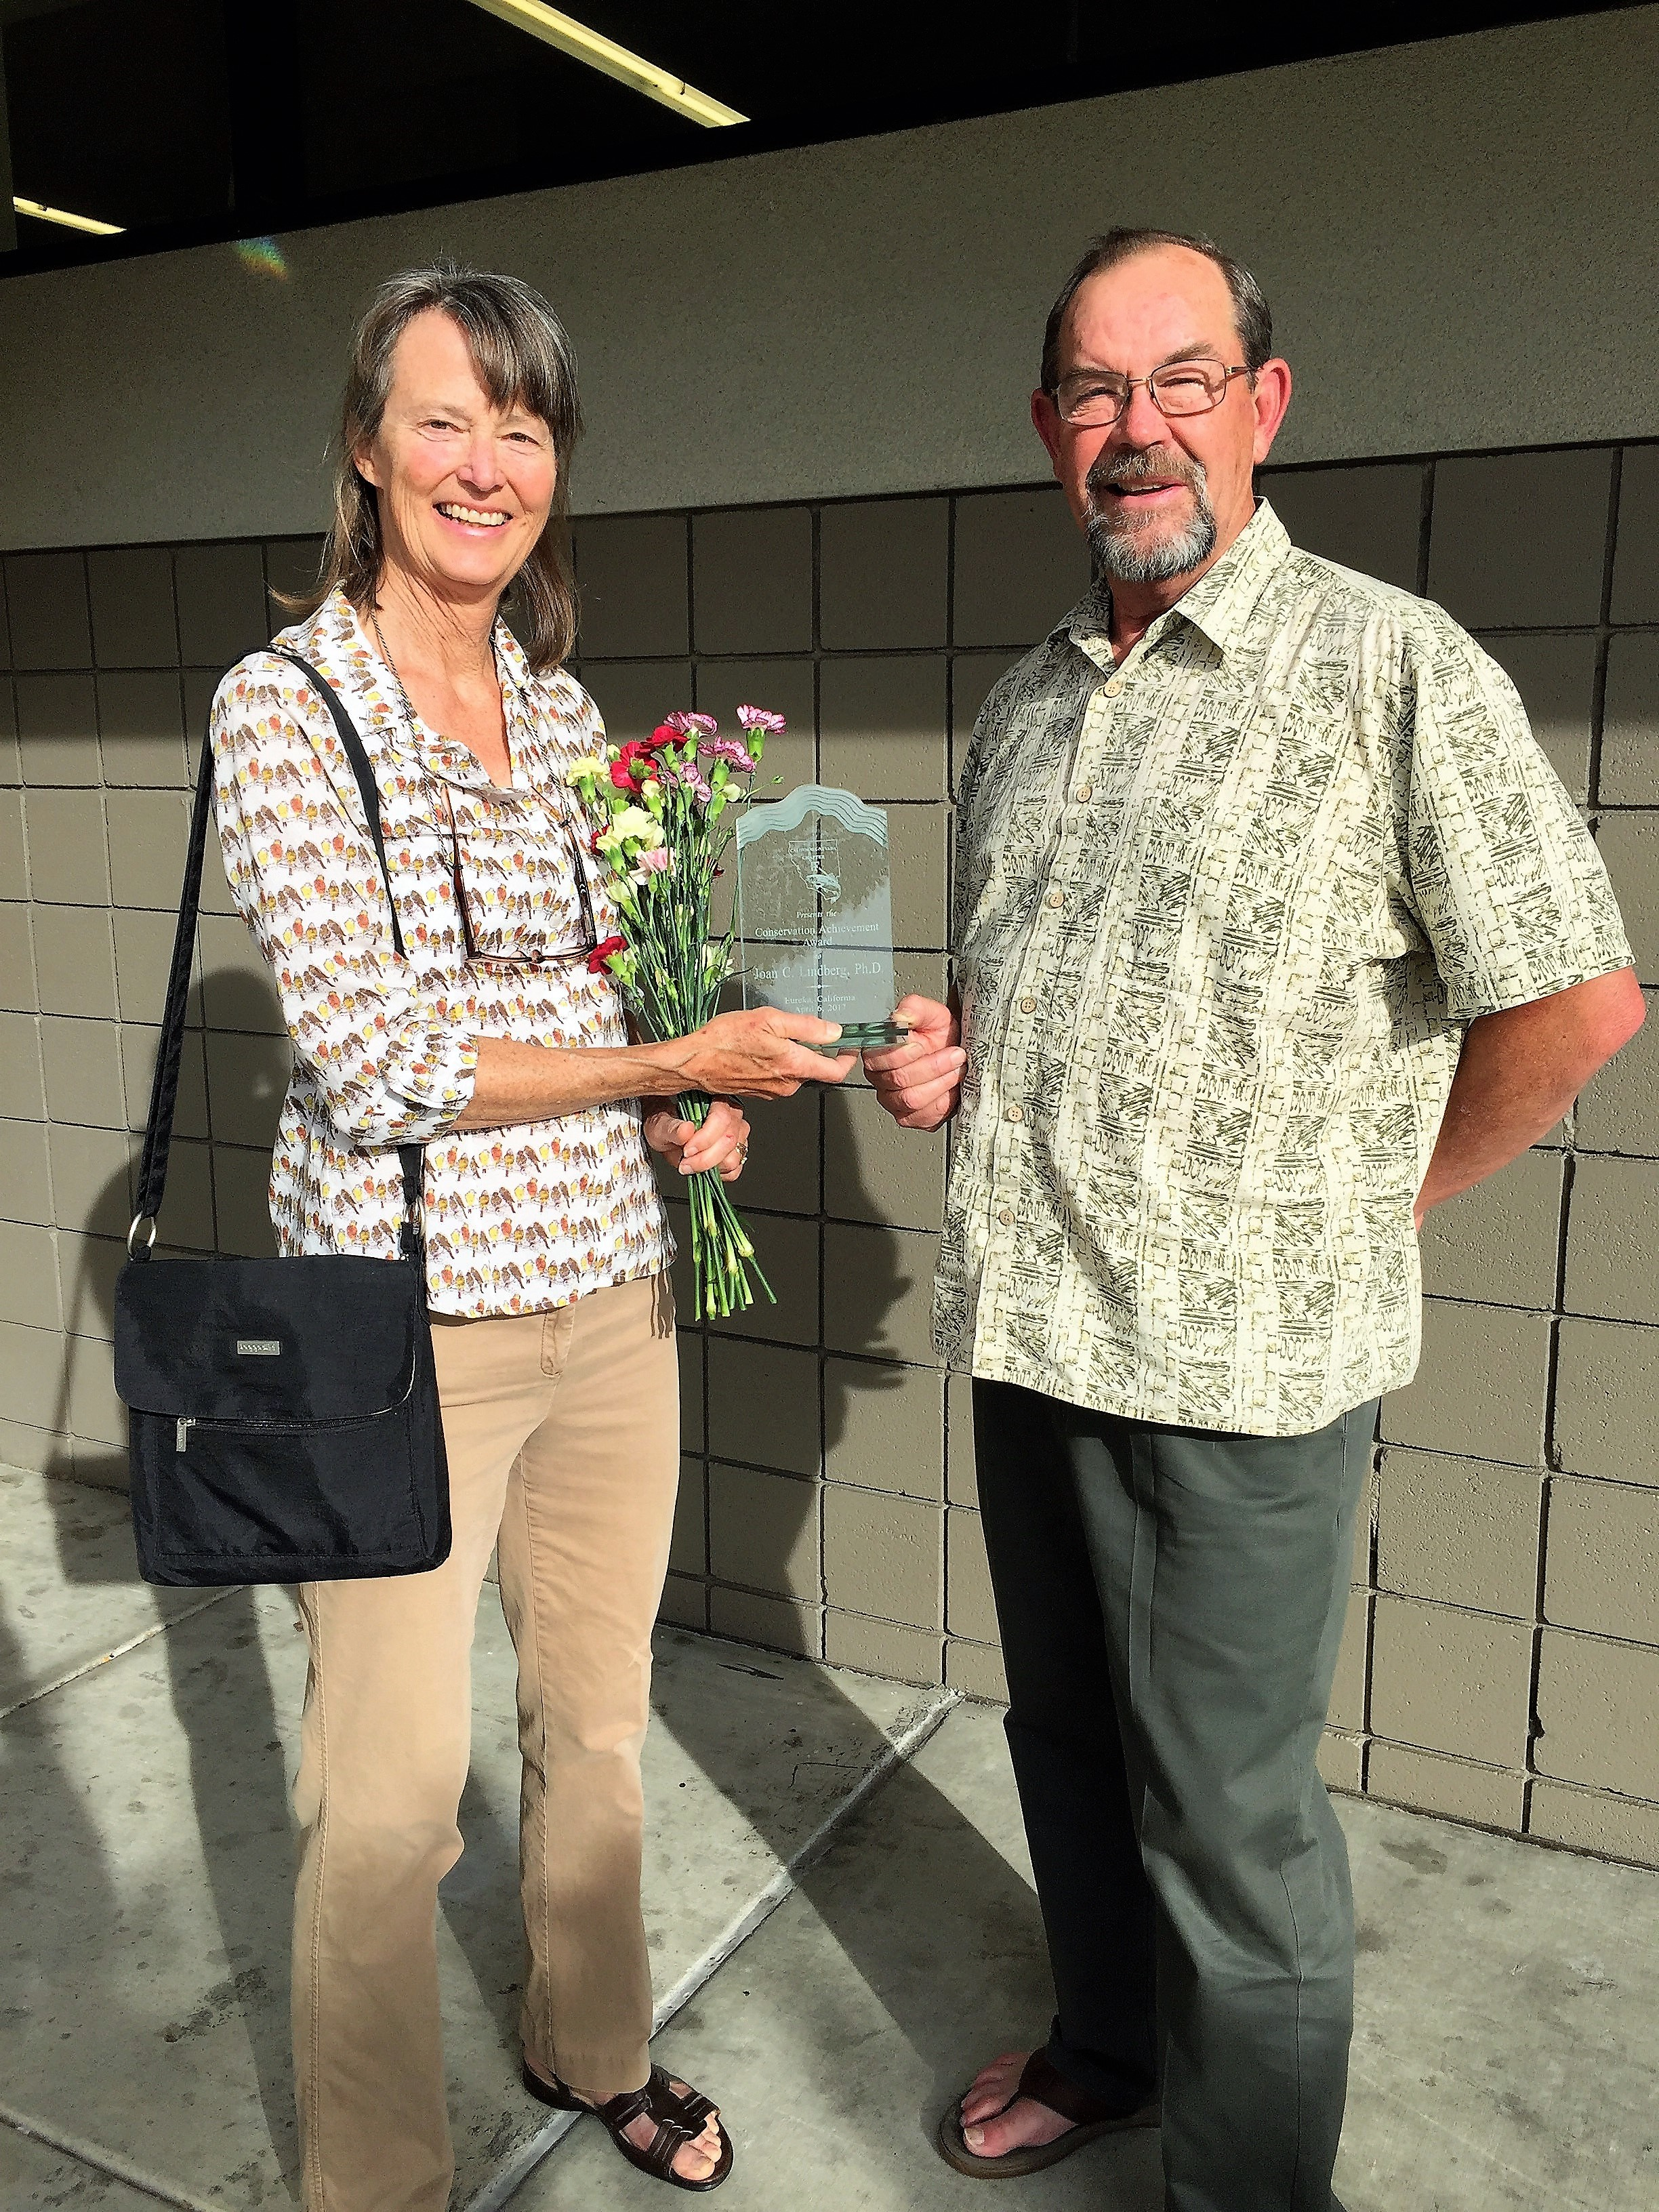 2017.05.25 Congratulations to our former director Dr. Lindberg, left, for winning the Conservation Achievement Award!